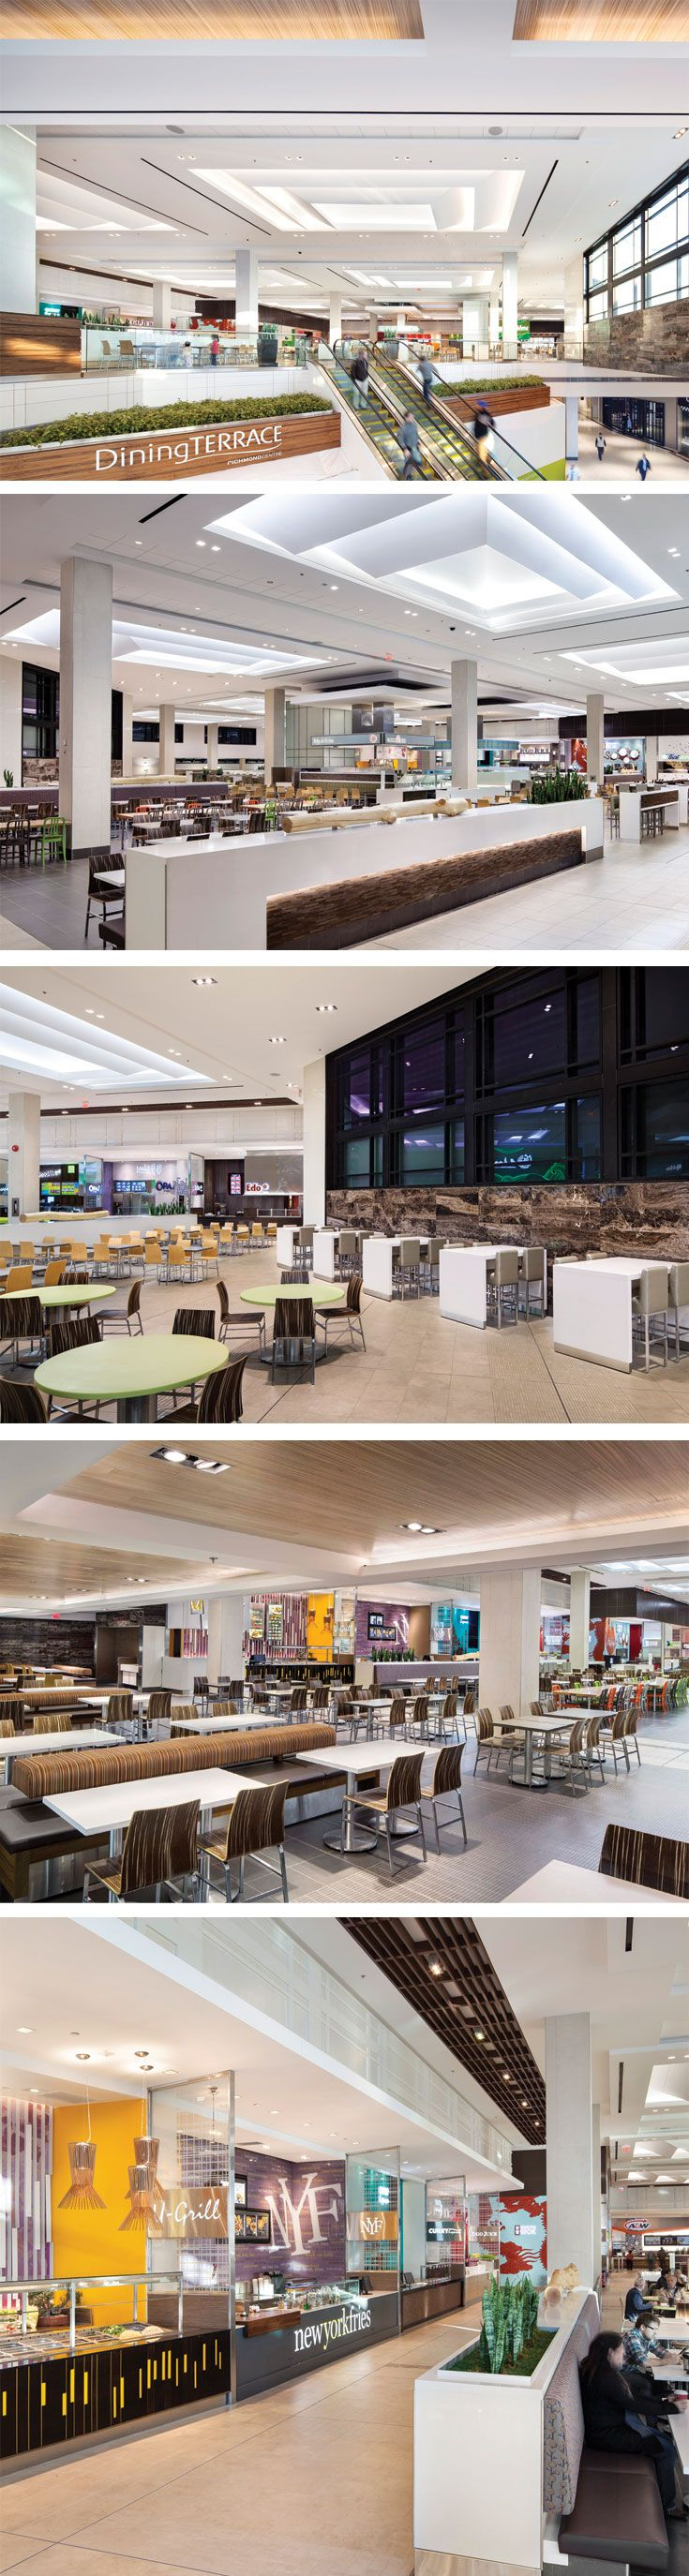 Richmond Centre Dining Terrace In Richmond British Columbia Designed By Gh A In Collaboration With Abbarach A Food Court Design Mall Food Court Mall Design